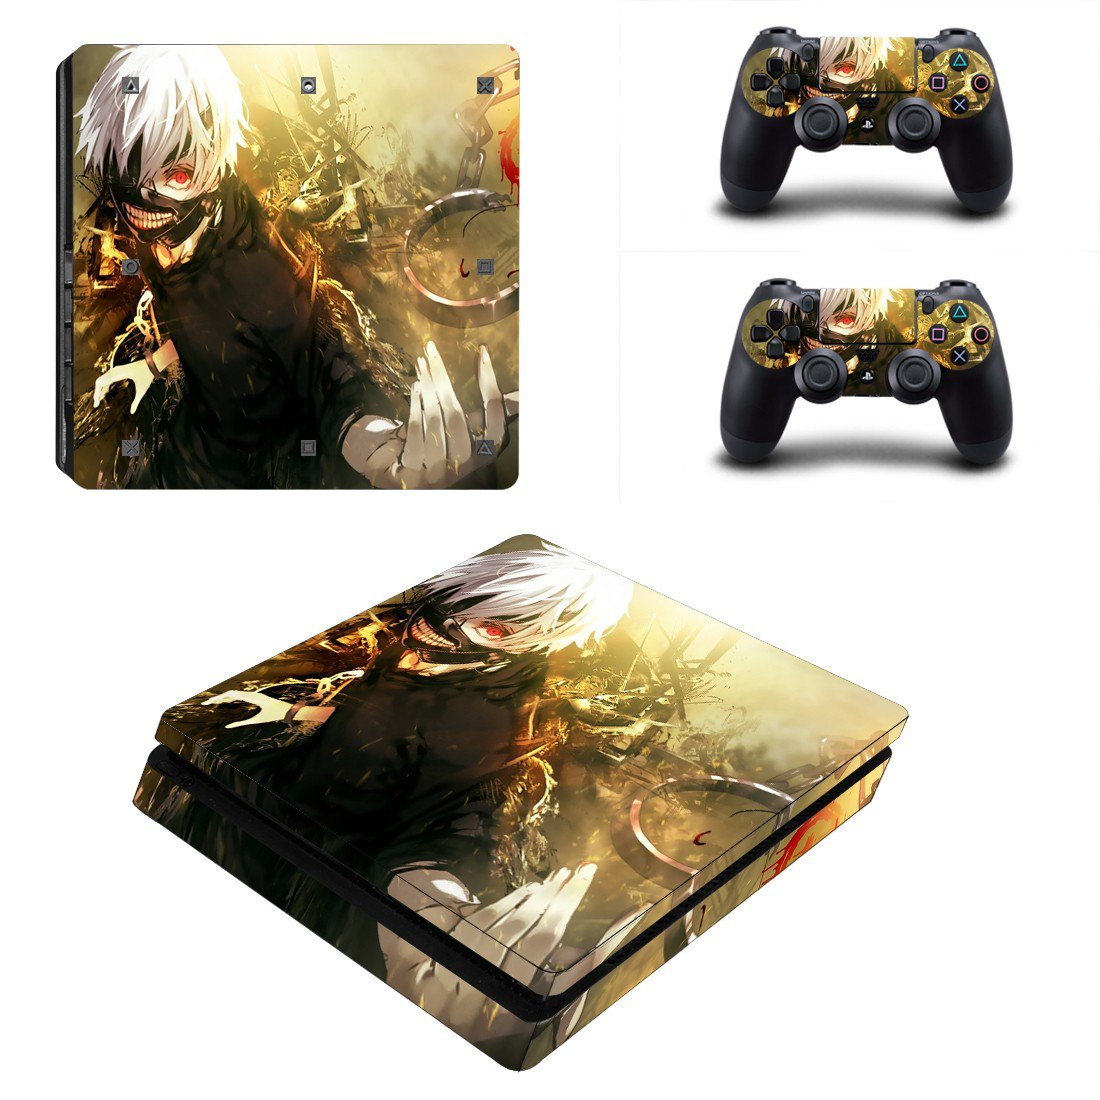 Tokyo Ghoul Play Station 4 slim skin decal for console and 2 controllers